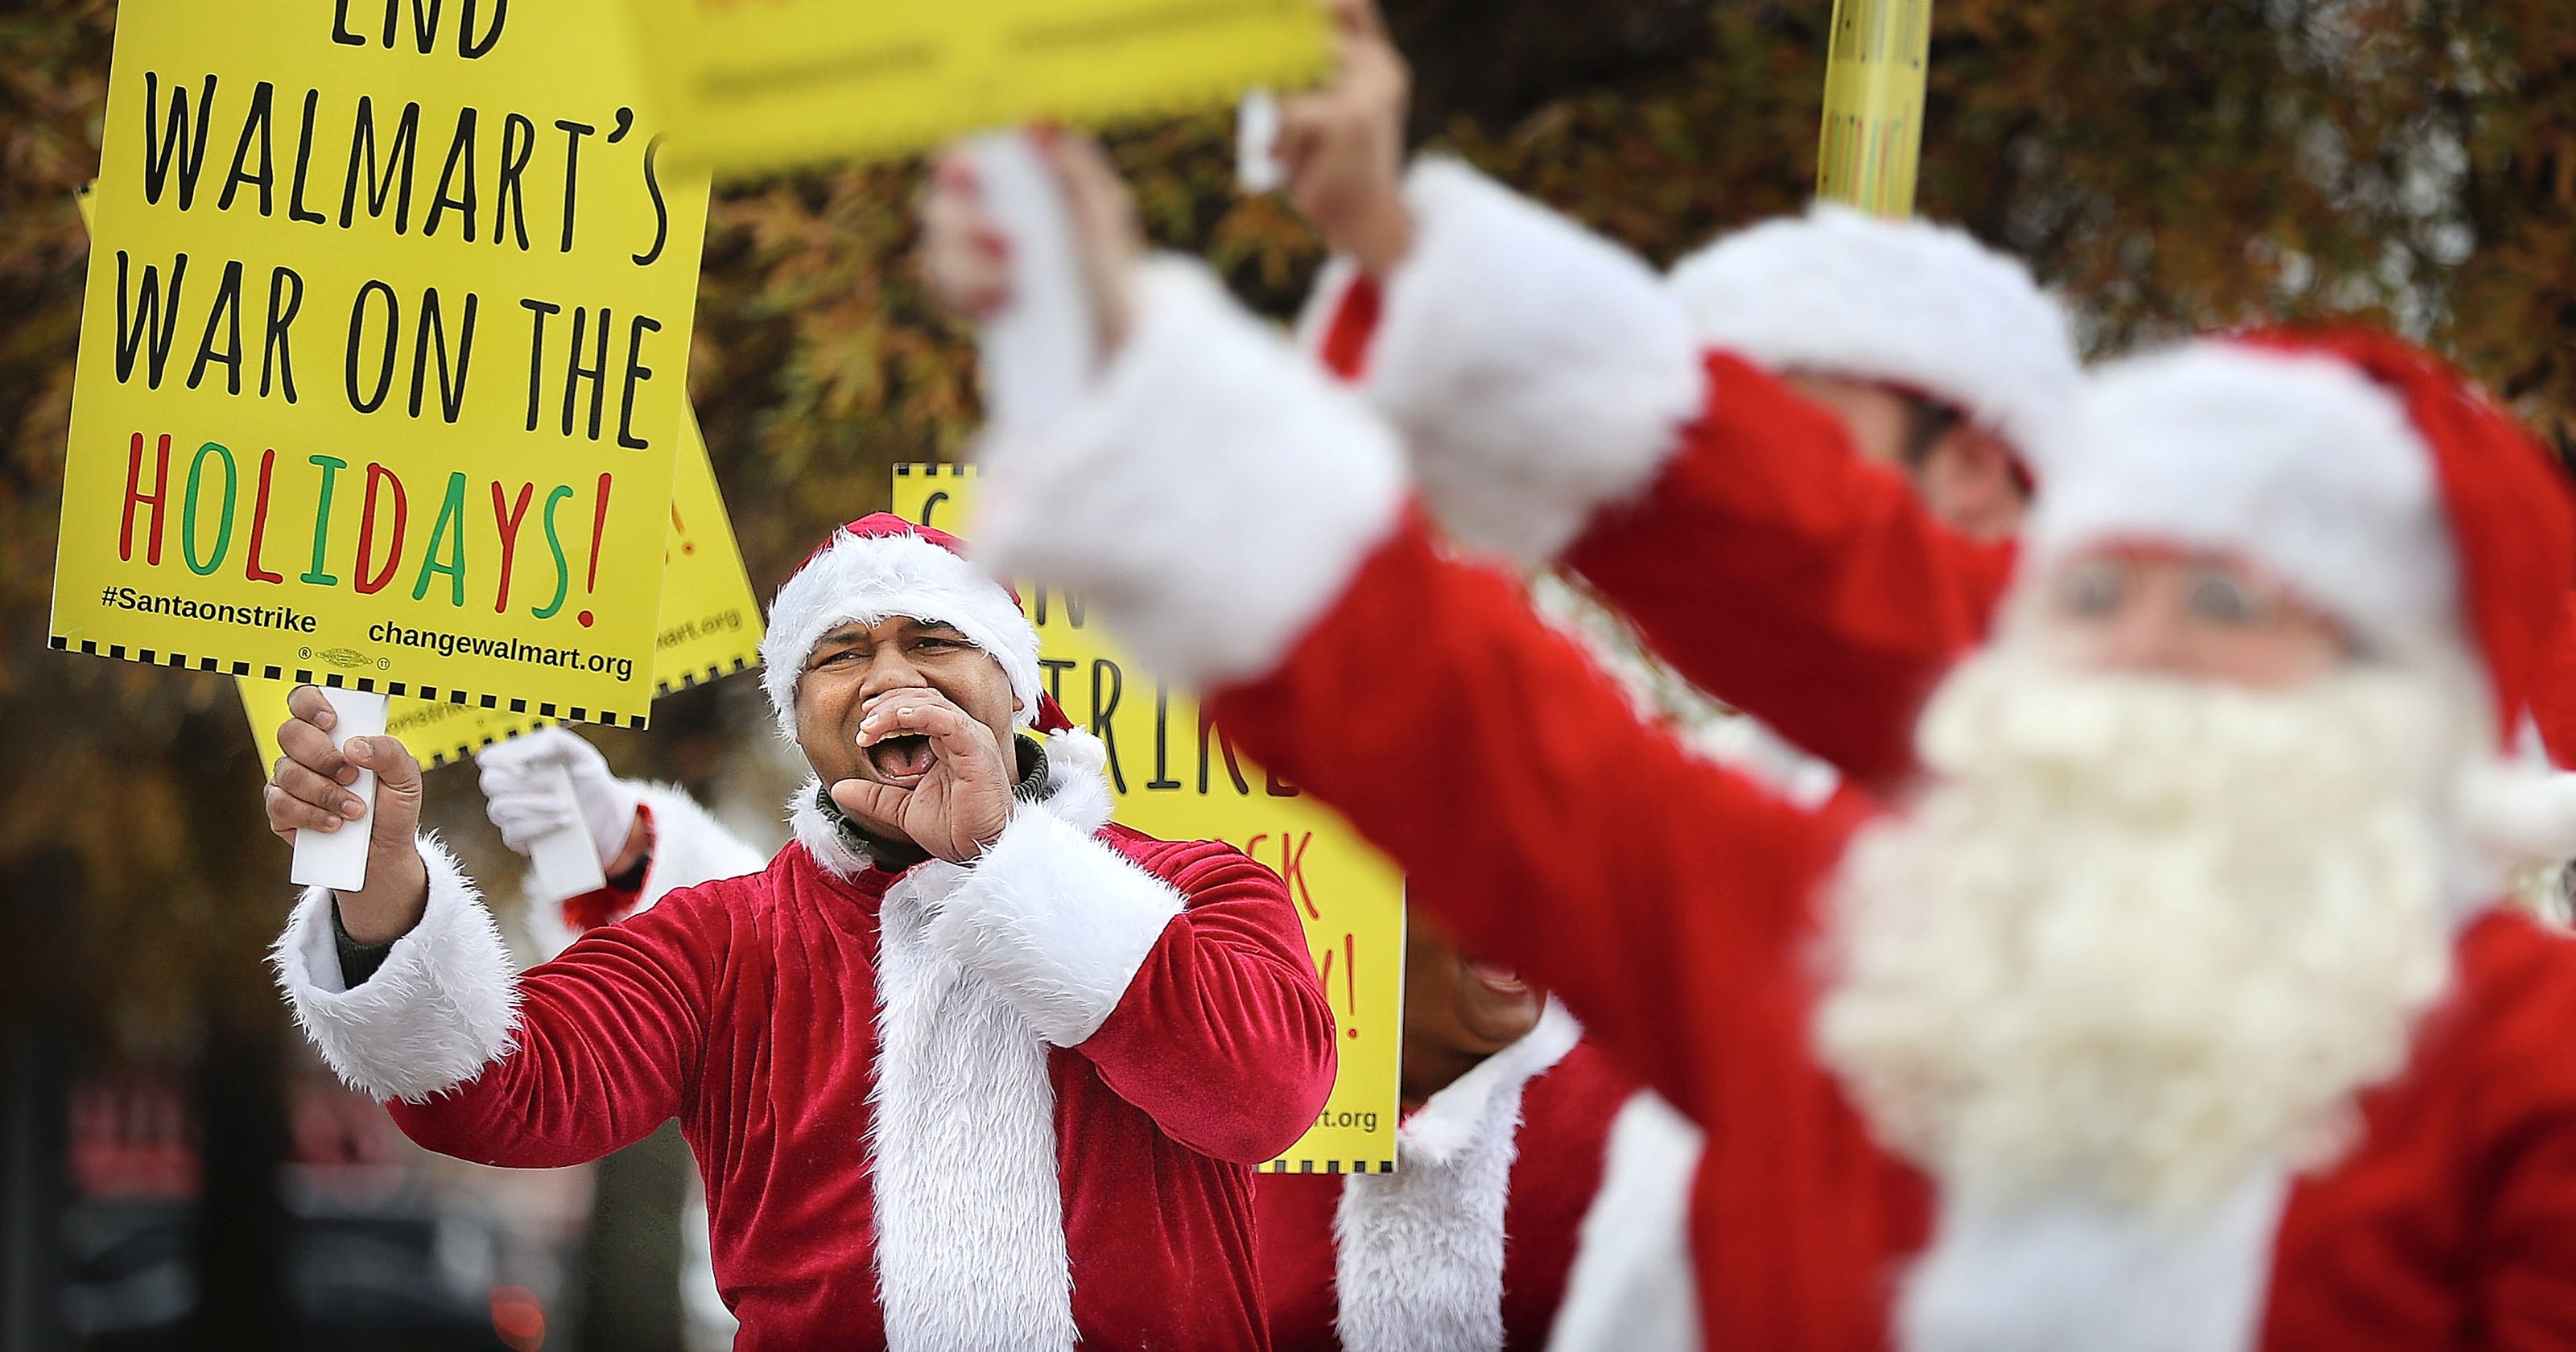 santa protesters say walmart is a grinch - What Time Walmart Close Christmas Eve